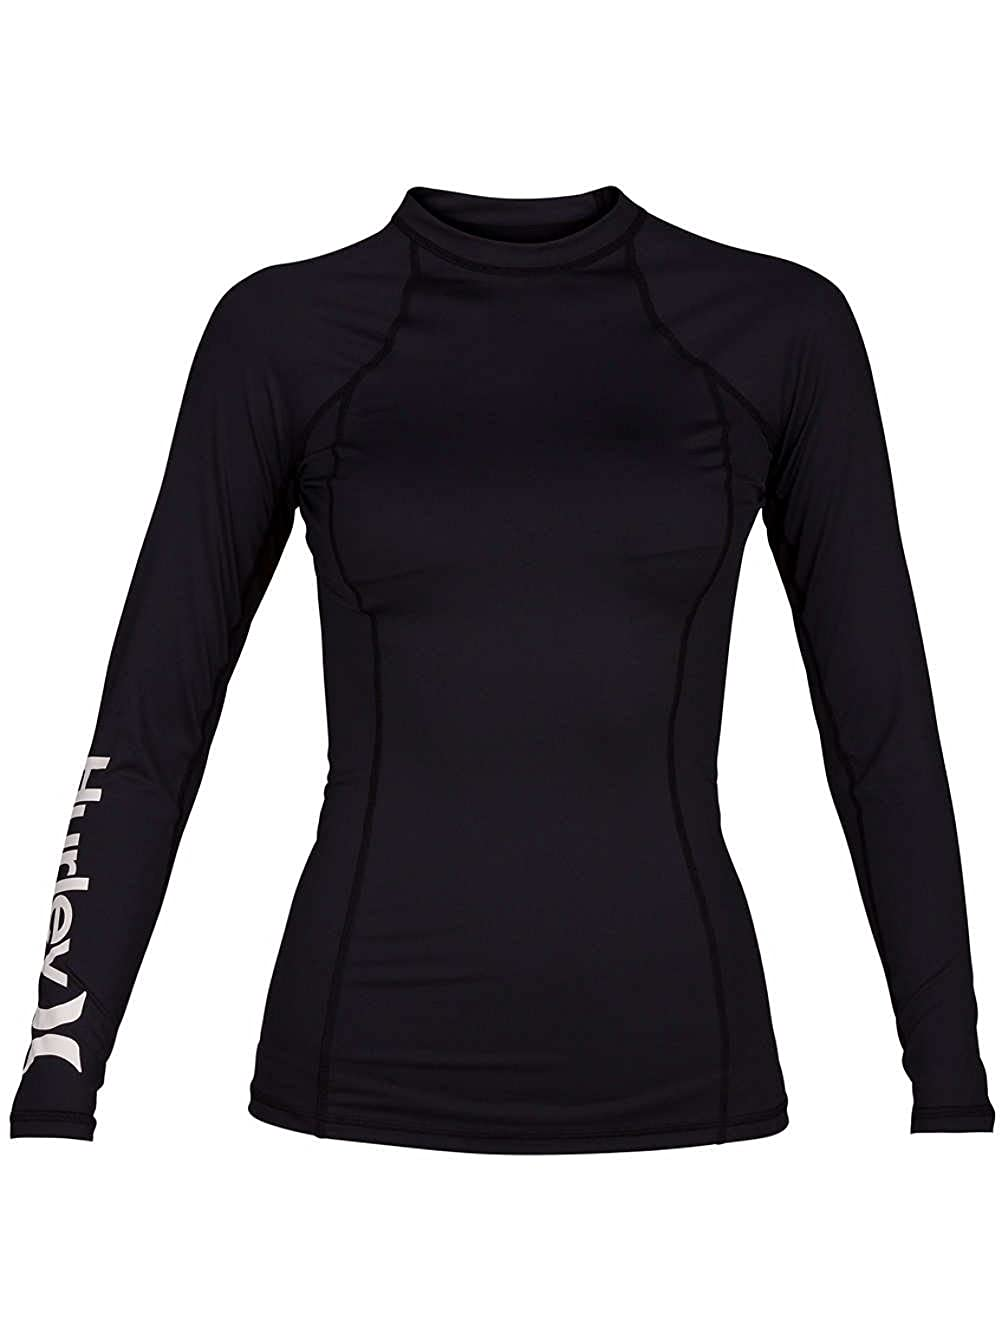 Hurley Womens Standard One & Only Long Sleeve Fitted Rashguard SPF Protection AJ2649